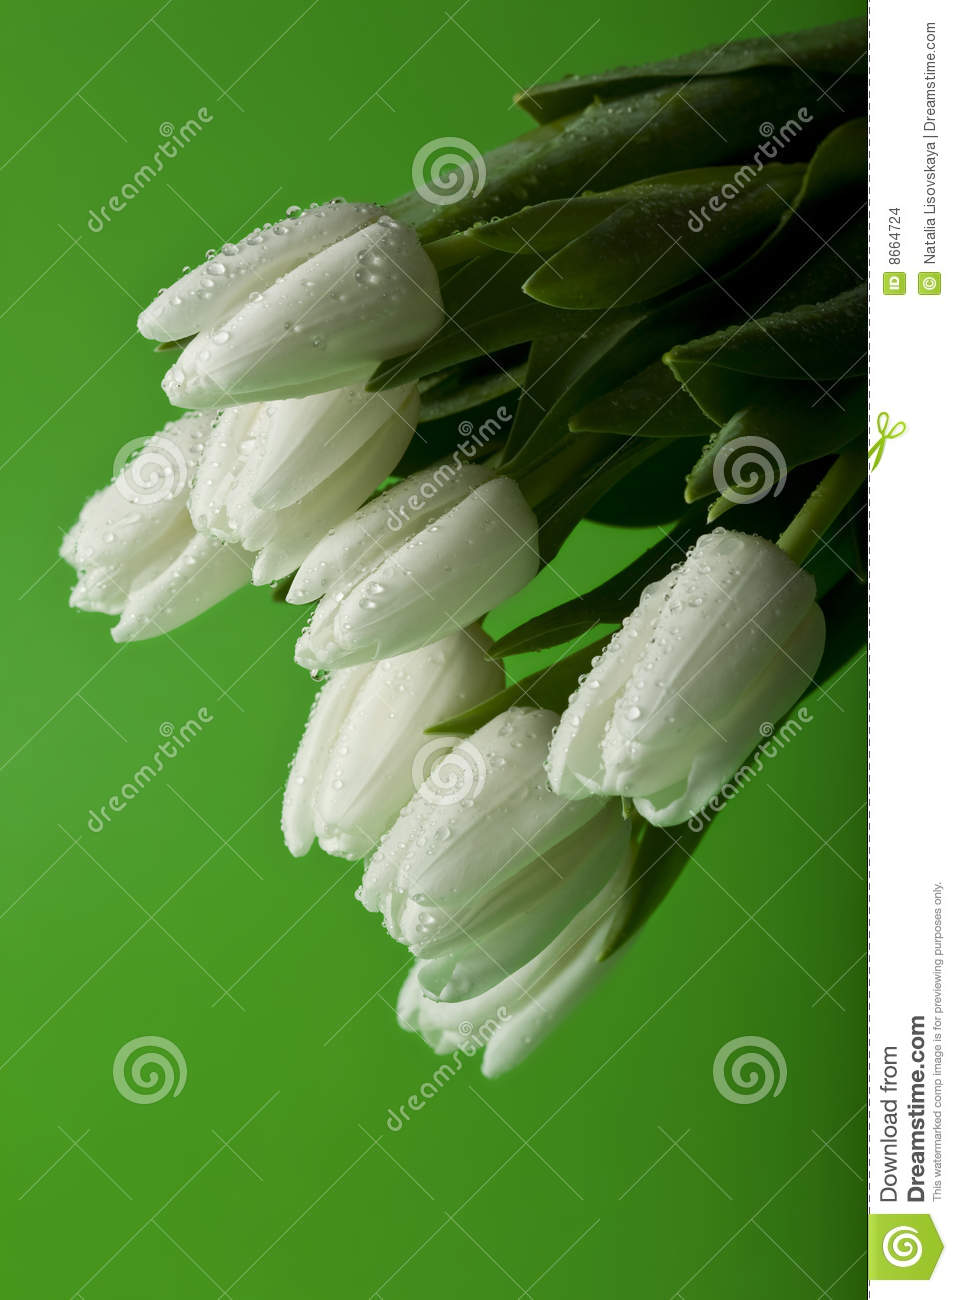 Tulipes blanches humides